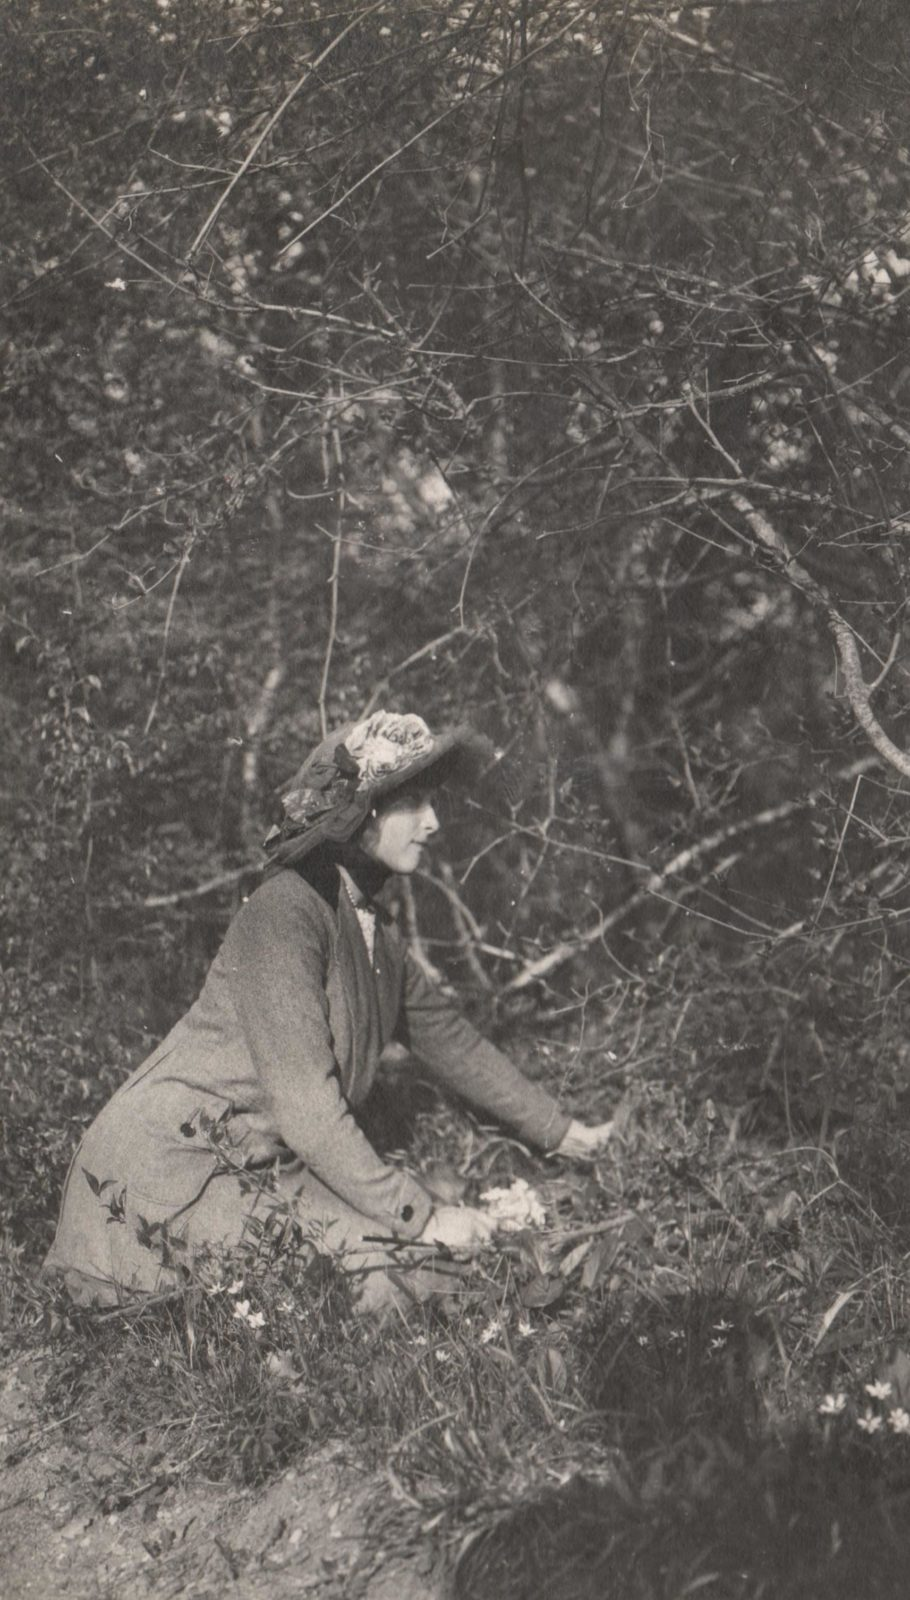 The daughter of Emperor Nicholas II Grand Princess Tatiana Nikolaevna in nature. Livadia.